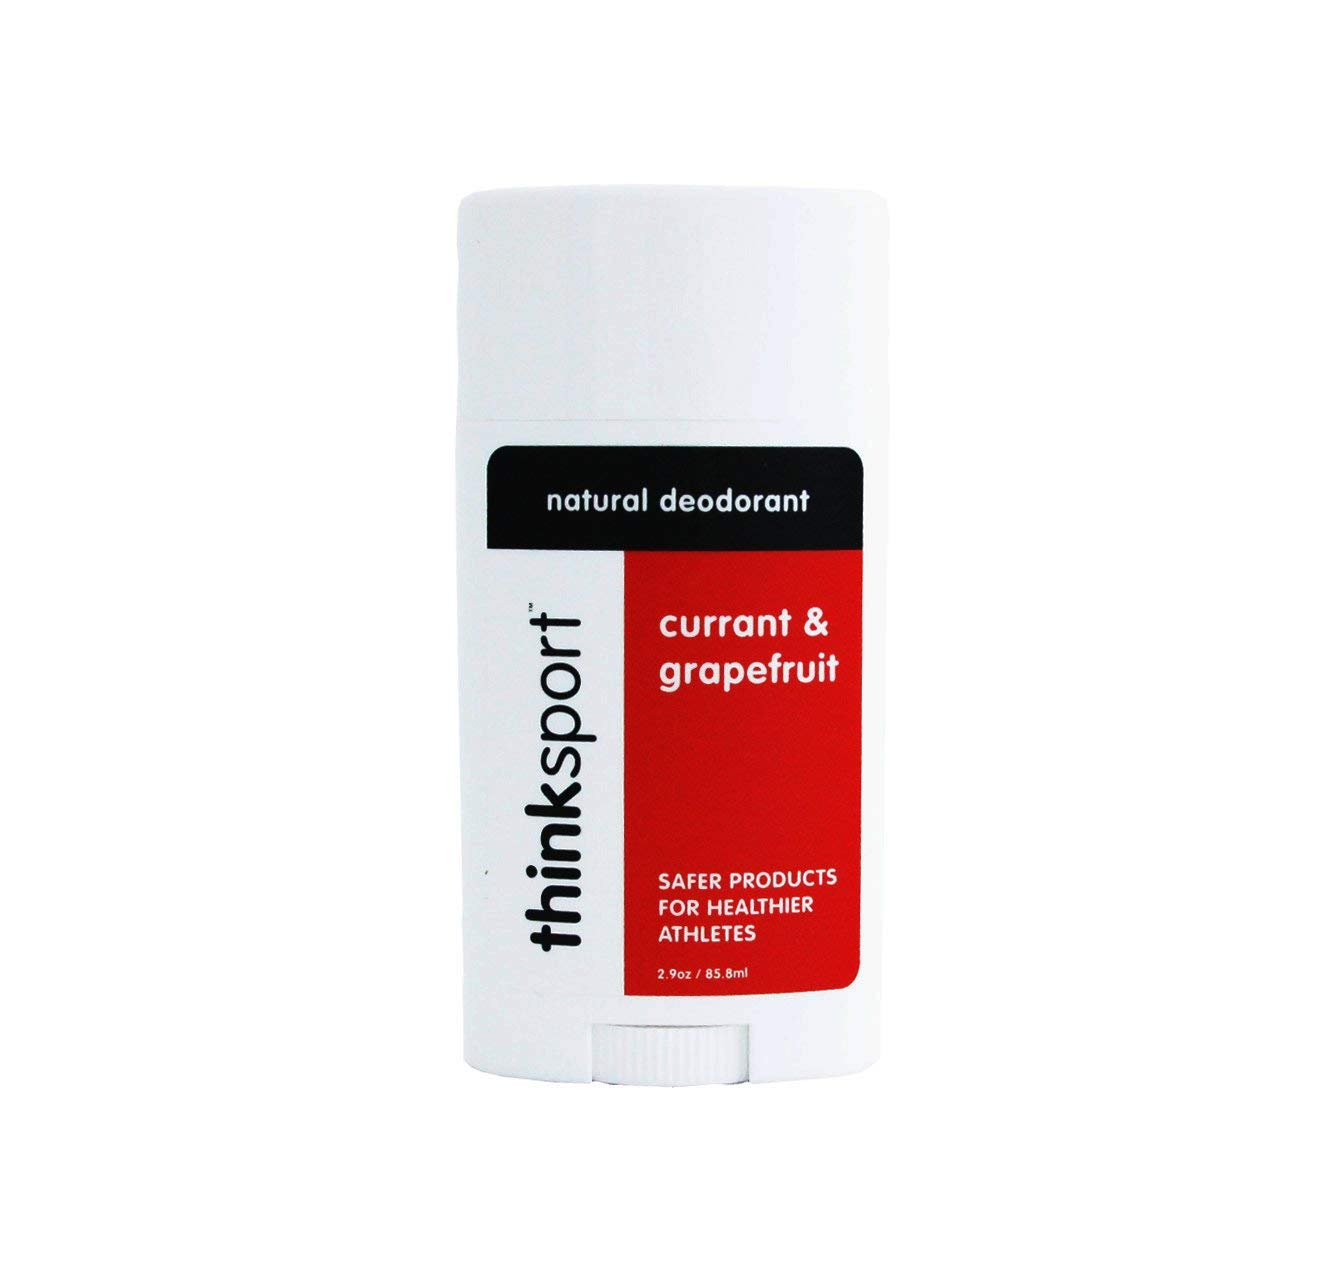 THINKSPORT NATURAL DEODORANT - GRAPEFRUIT & CURRANT